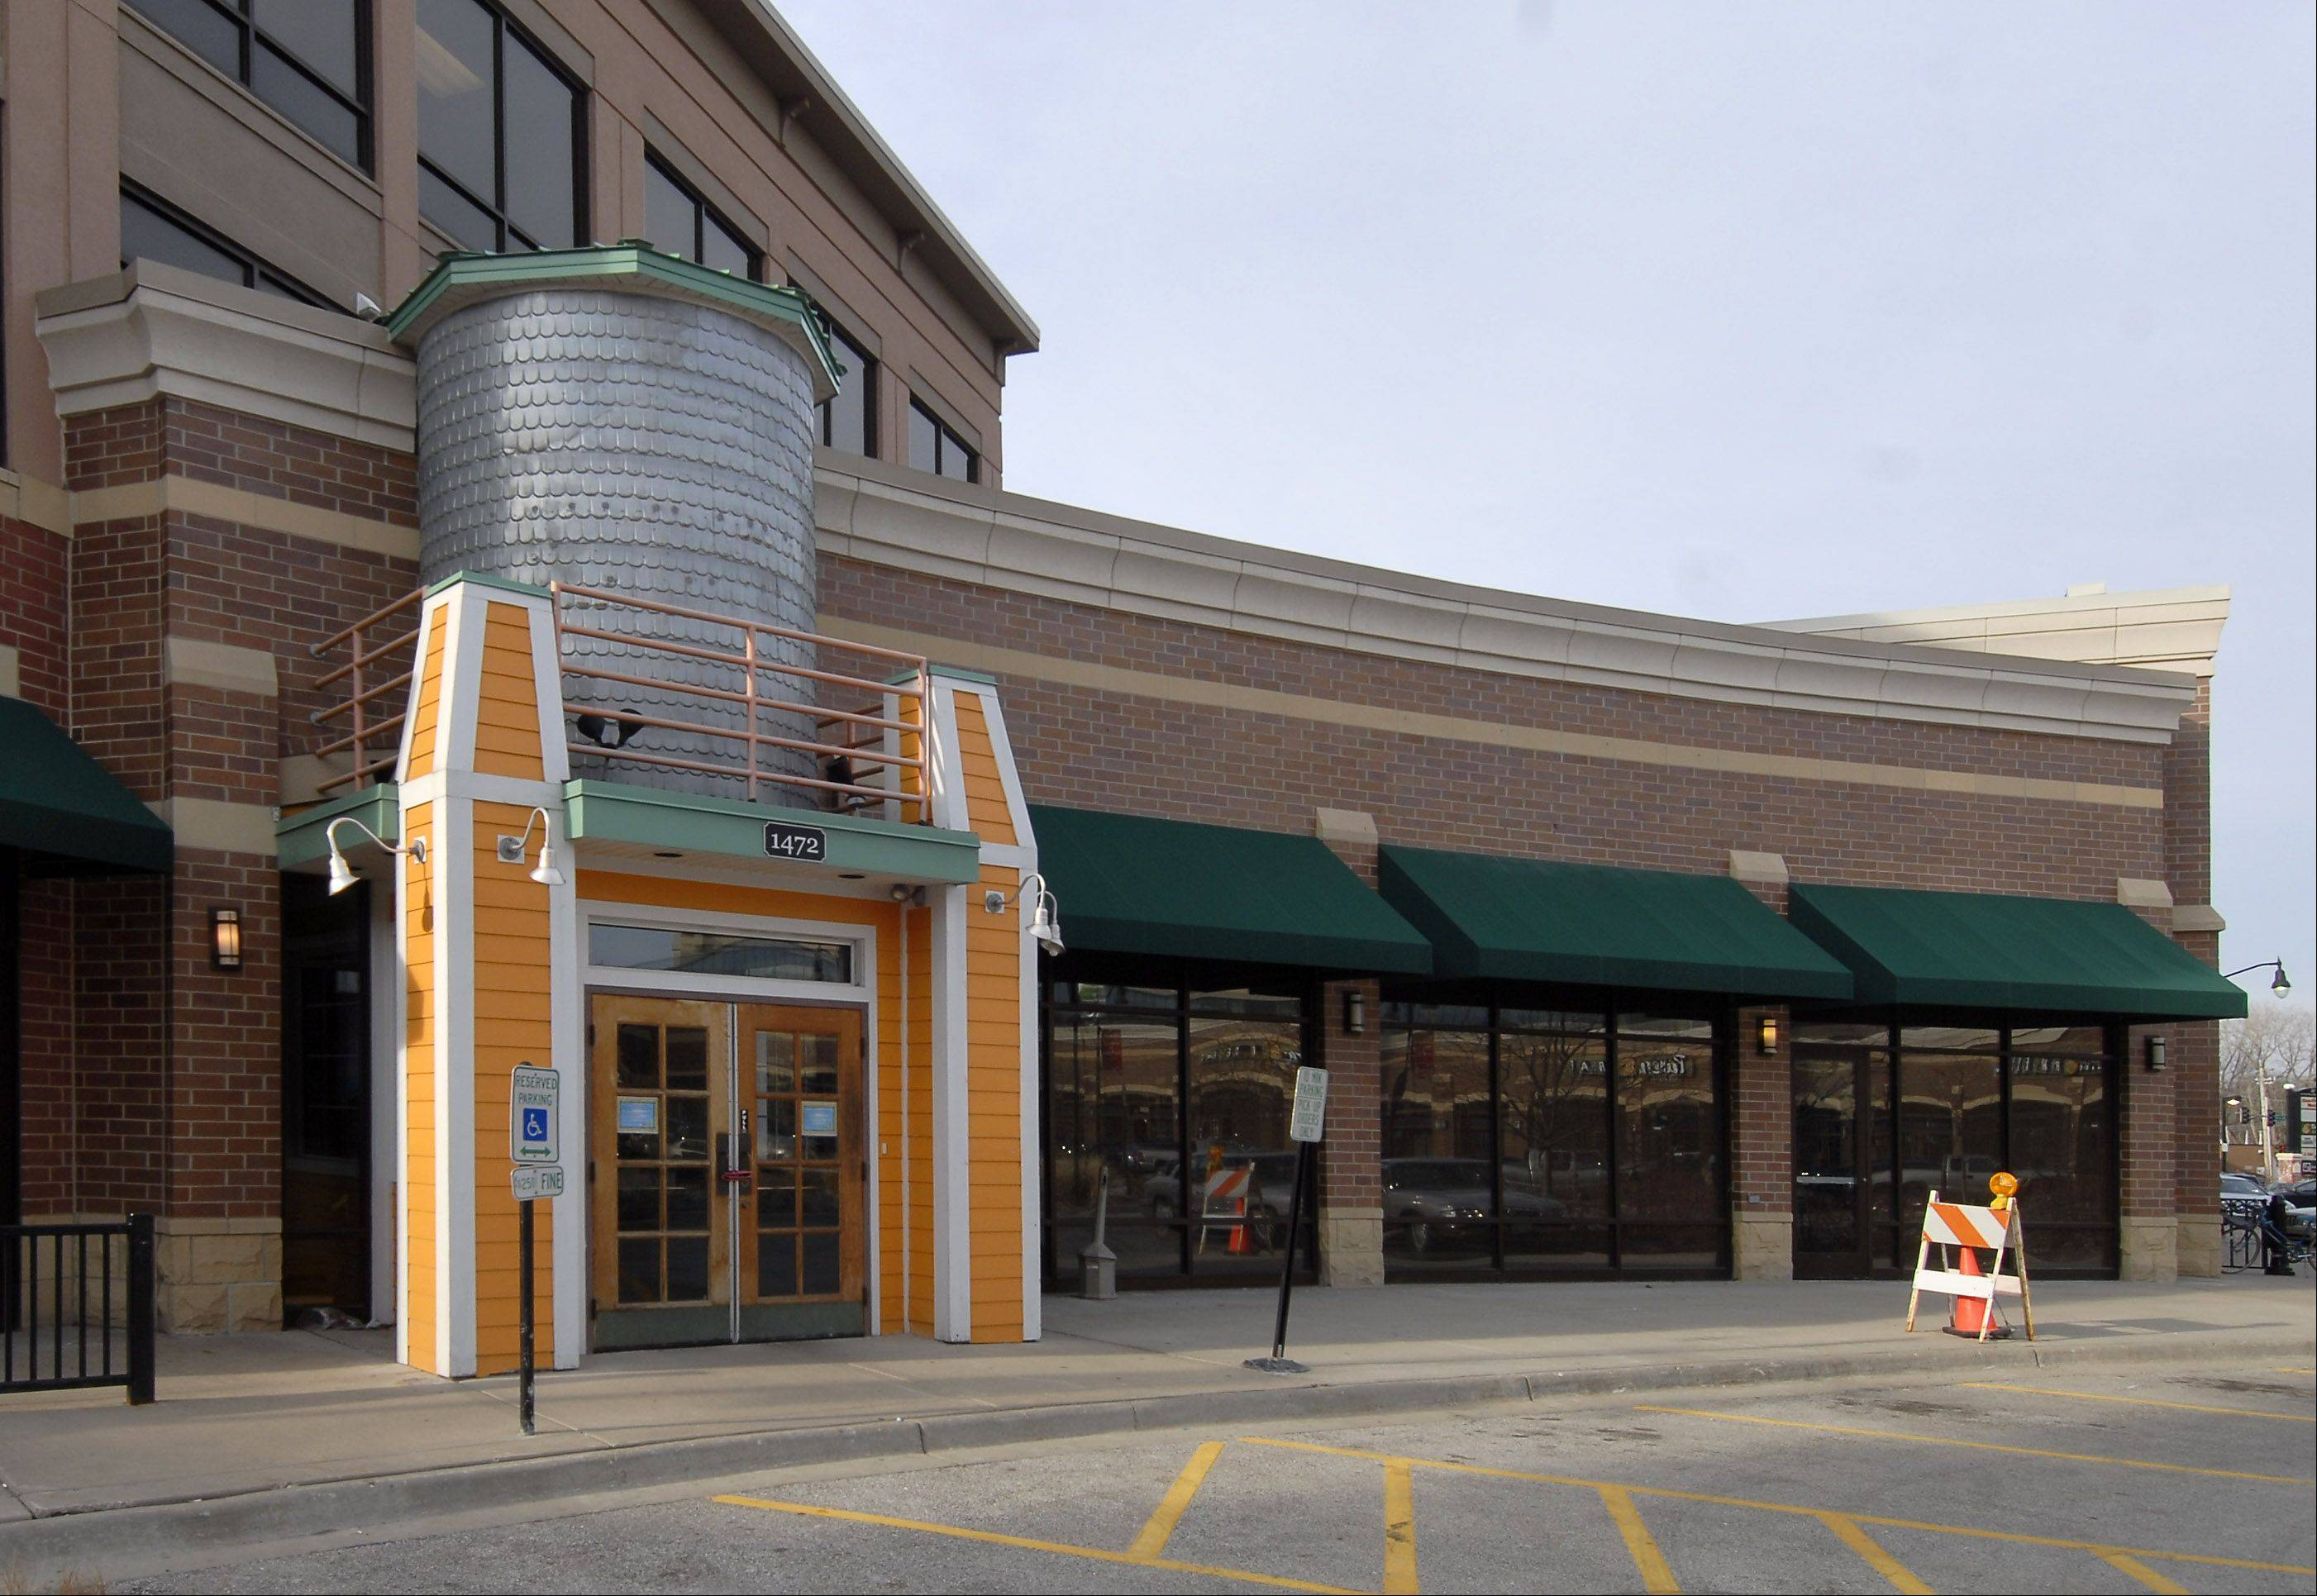 The shuttered Cheeseburger in Paradise restaurant in Des Plaines' downtown Metropolitan Square shopping center will make way for a Tap House Grill set to open this September. City officials on Monday granted the restaurant's operators $80,000 in business incentives.